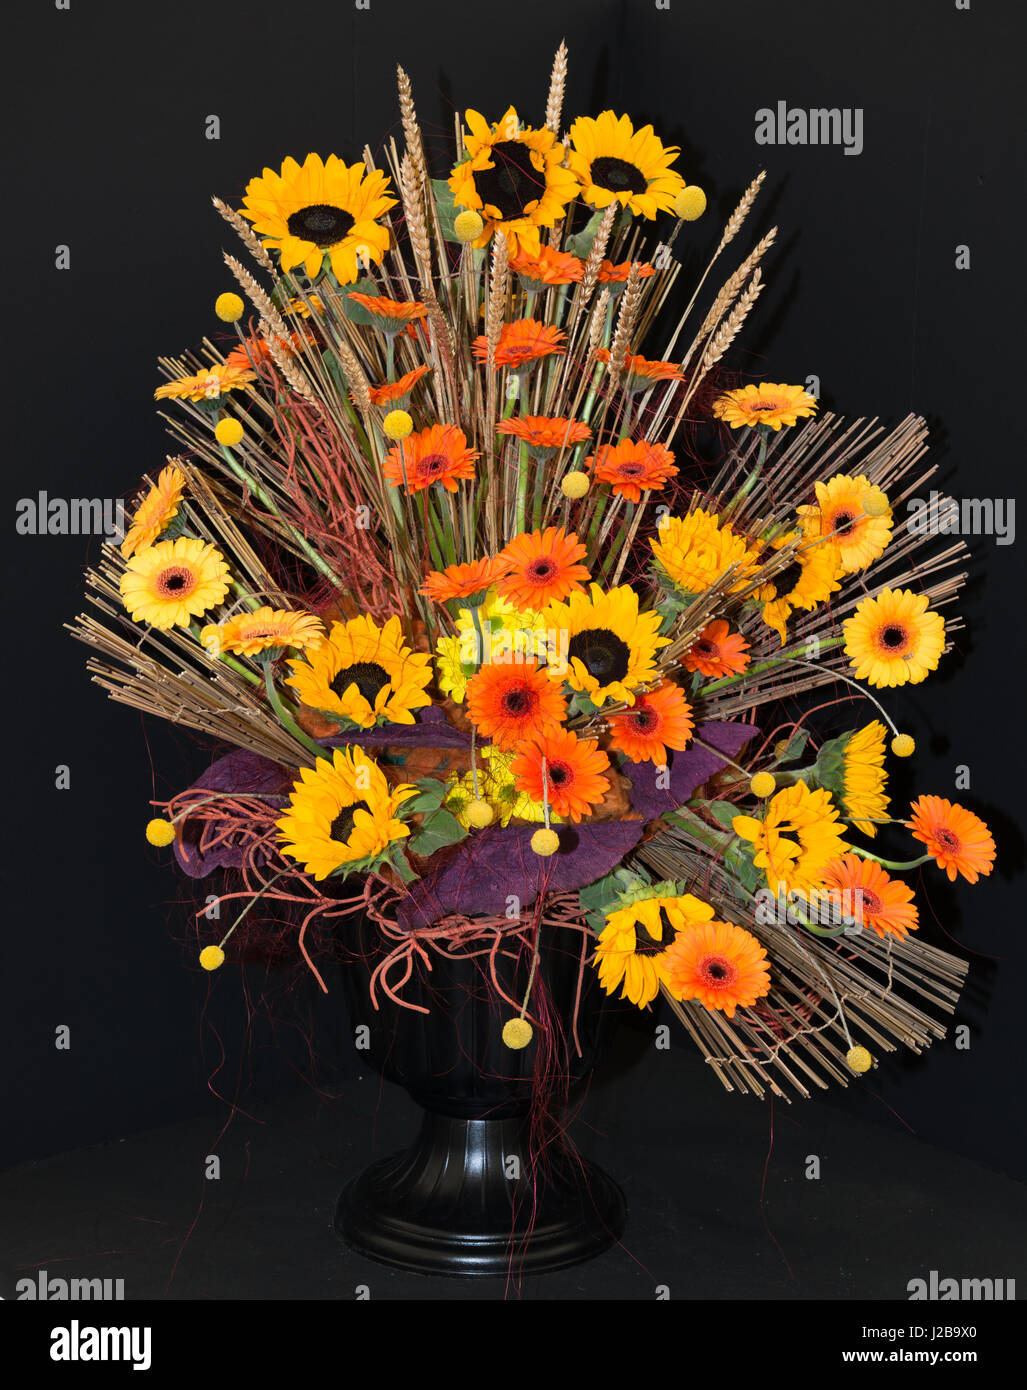 Flower arrangement with orange and yellow flowers and black stock flower arrangement with orange and yellow flowers and black background mightylinksfo